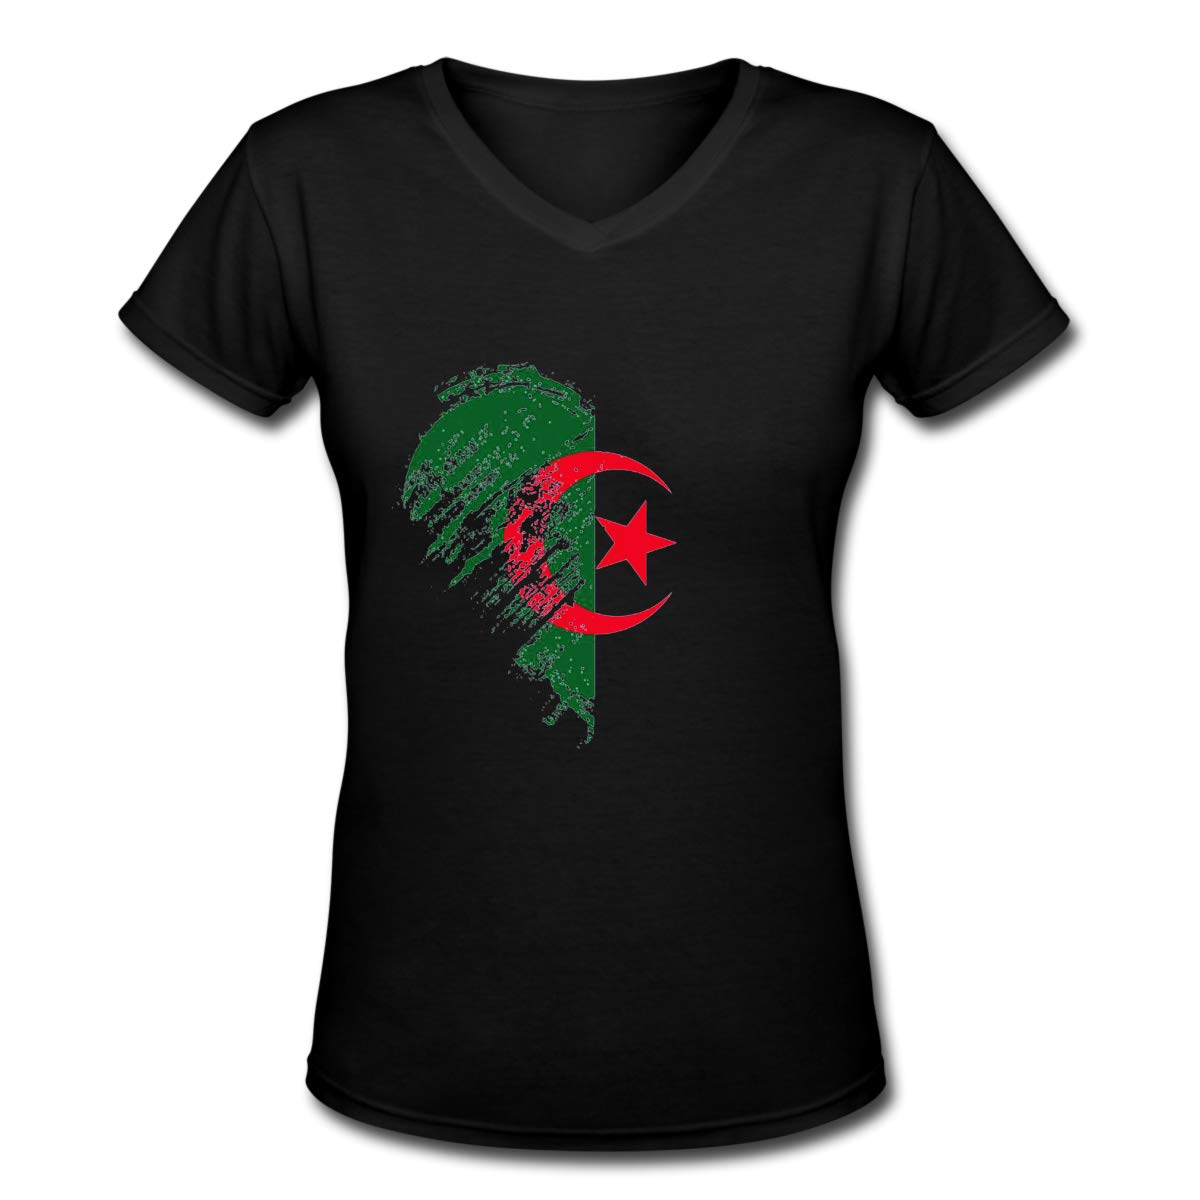 Grungy I Love Algeria Heart Womens T Shirt Casual Cotton Short Sleeve V-Neck Graphic T-Shirt Tops Tees